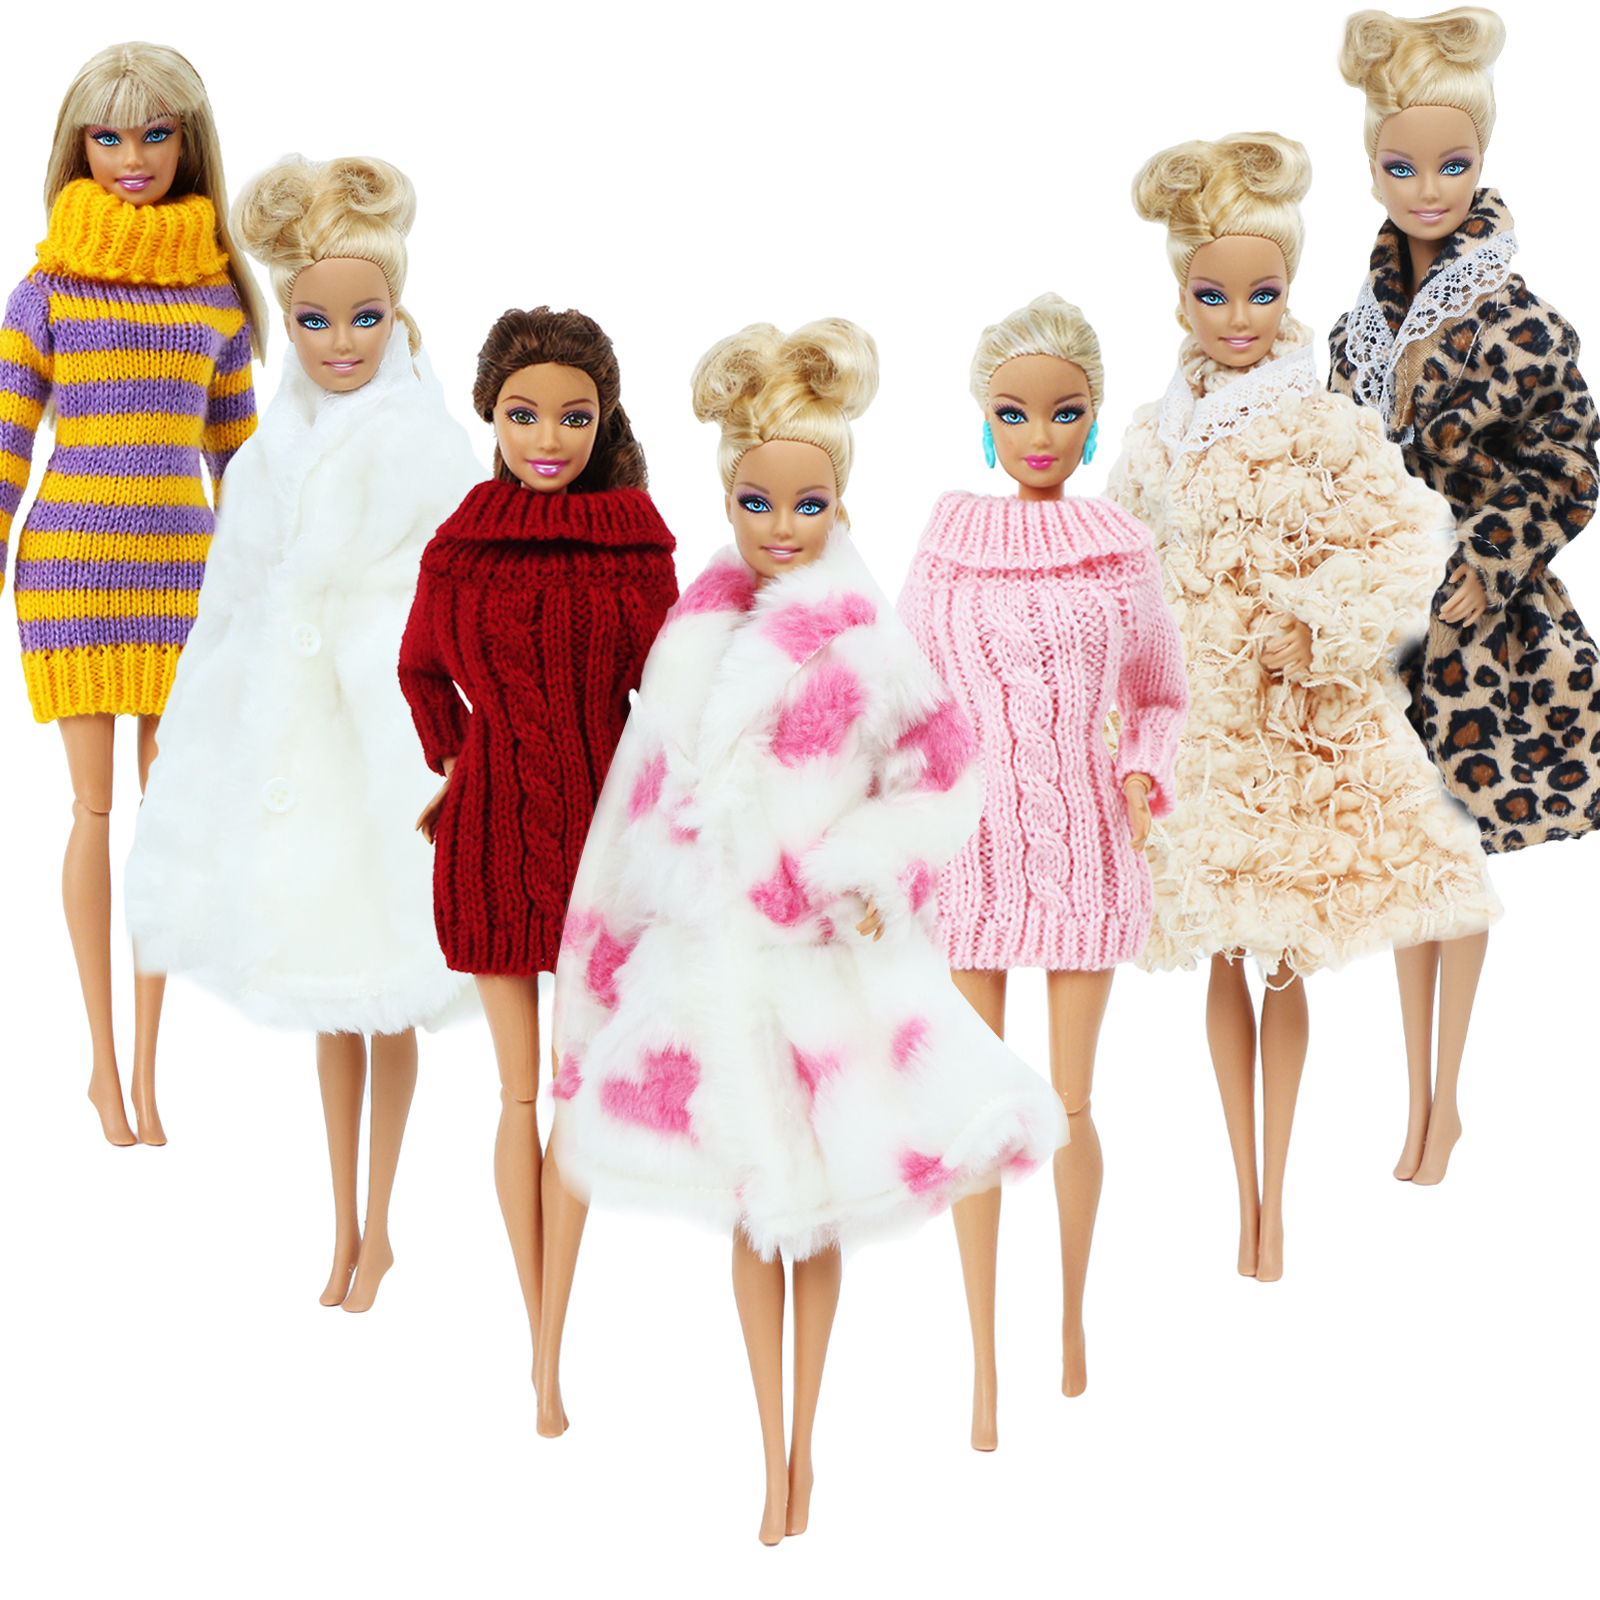 1 Set Winter Knitted Turtleneck Sweater Furry Robe Dress Clothes For Barbie Doll Toy 12 Inch. Accessories Lot Color Outfit